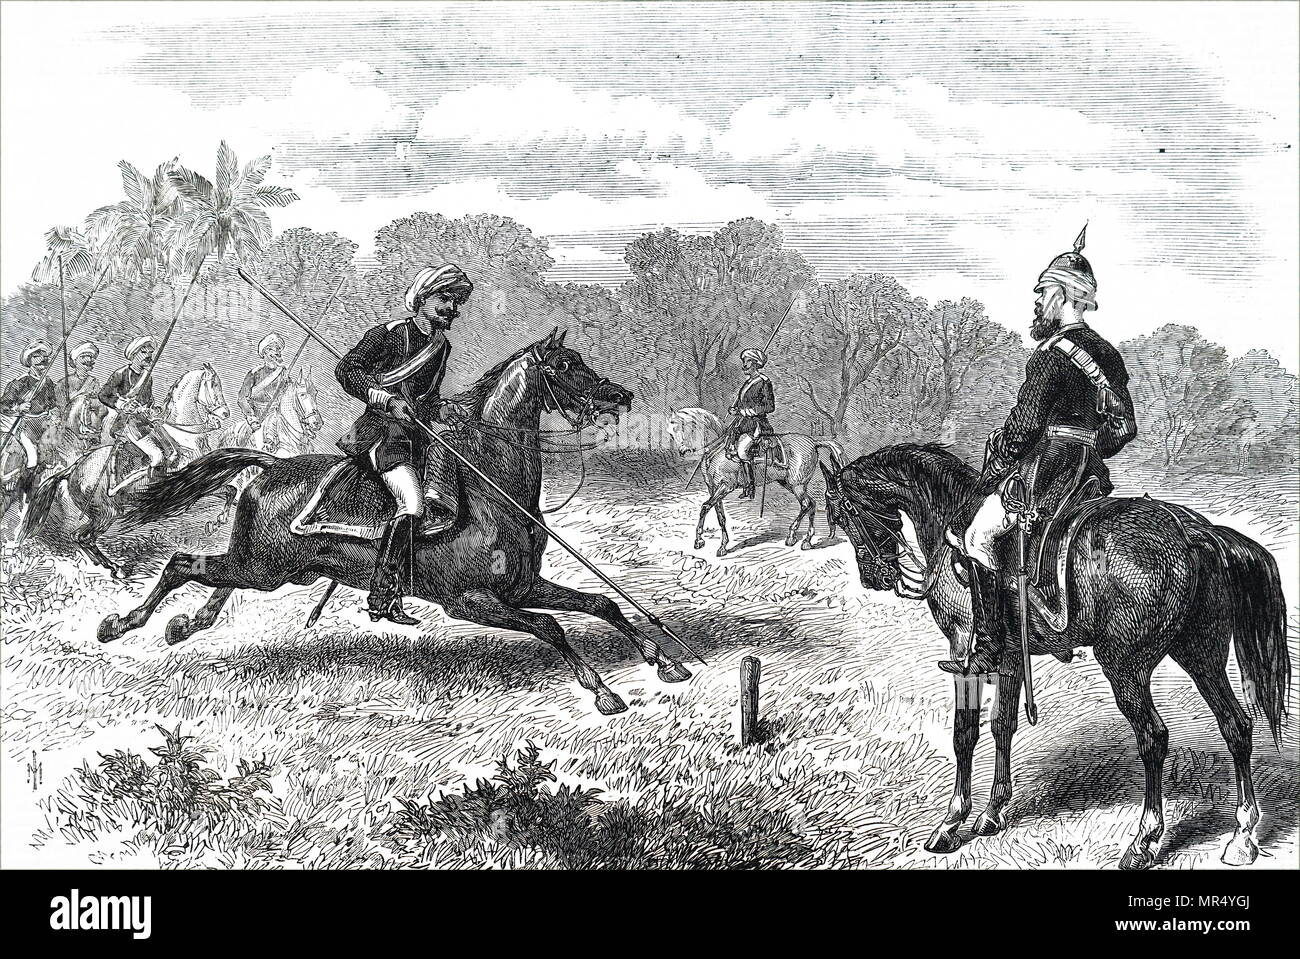 Illustration depicting men of the 8th Bengal Cavalry riding at a tent peg. Dated 19th century Stock Photo